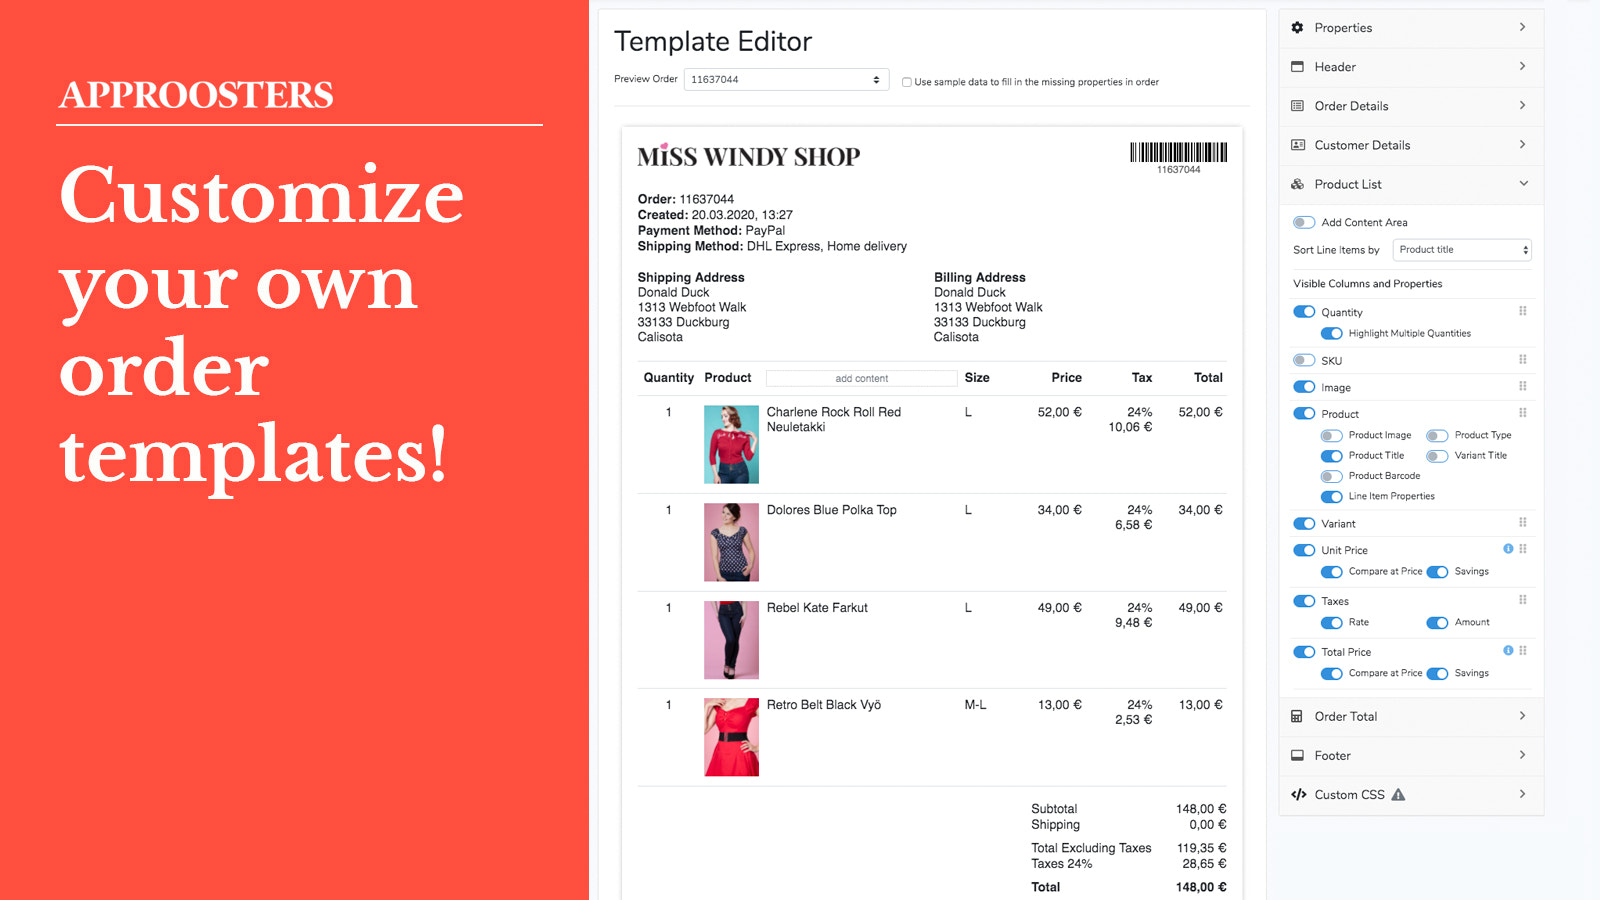 Order templates with easy customization.